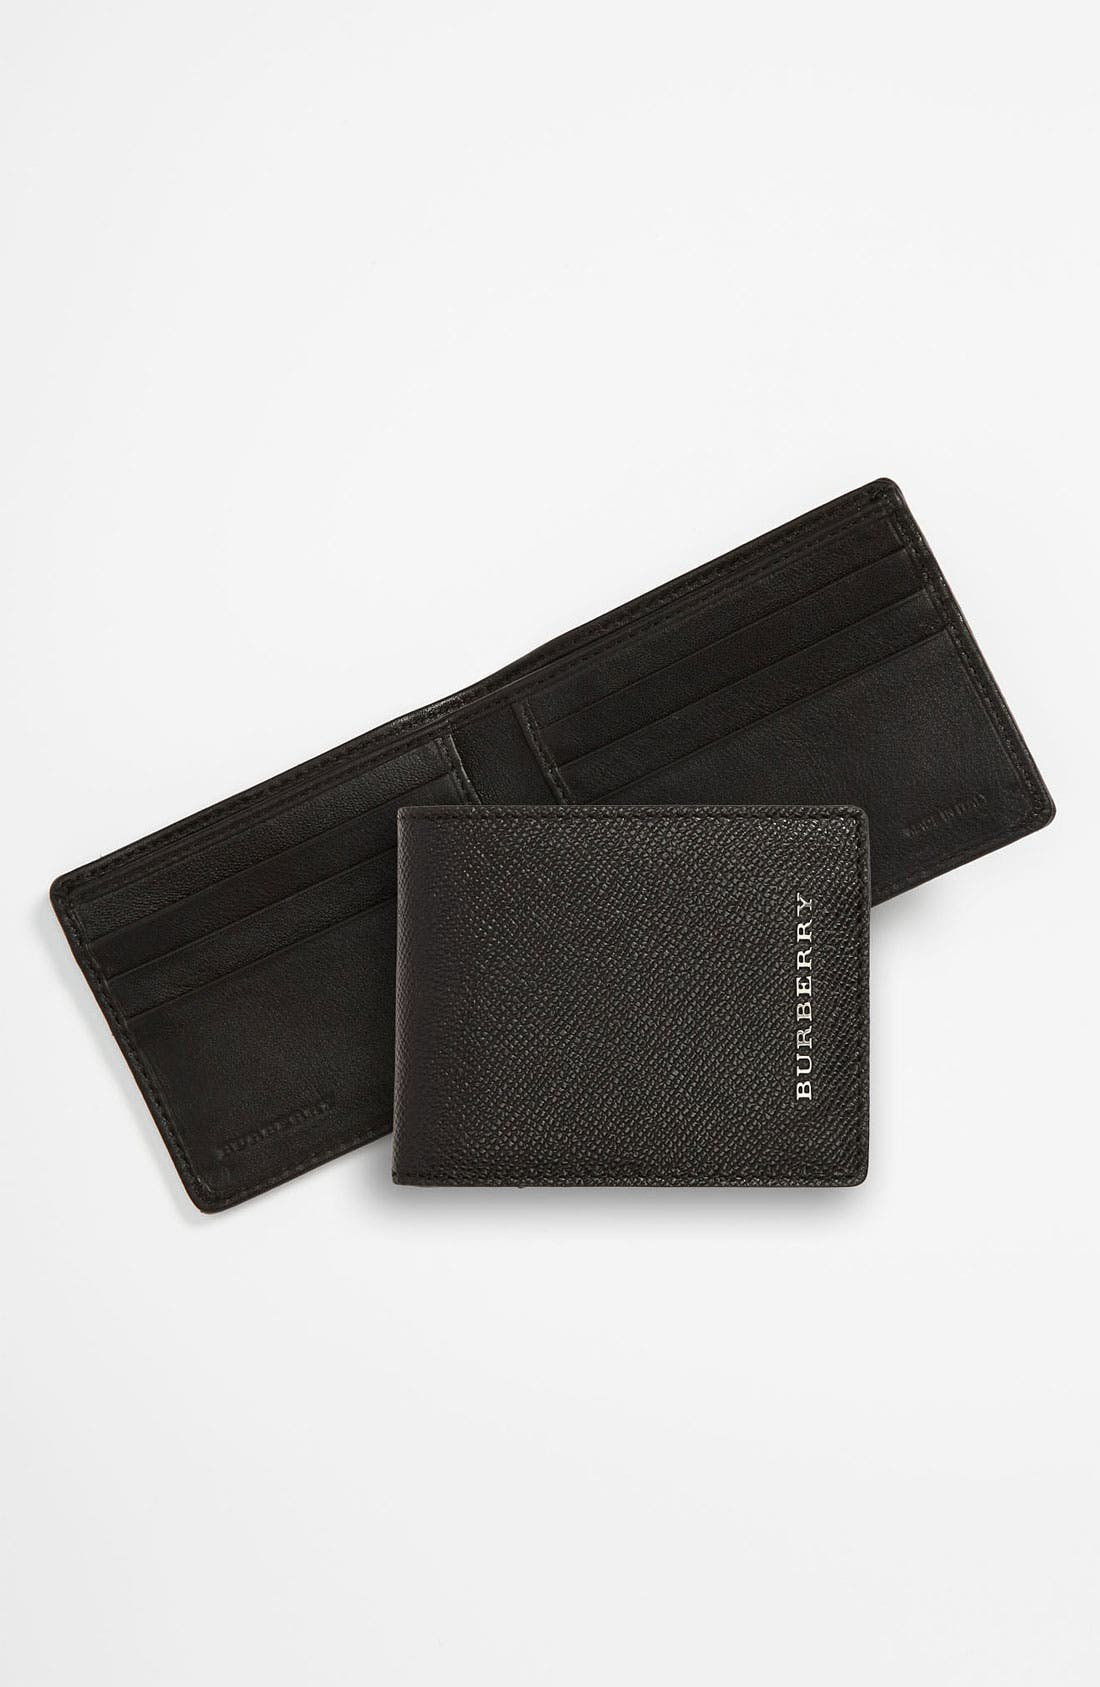 Alternate Image 1 Selected - Burberry Small Billfold Wallet